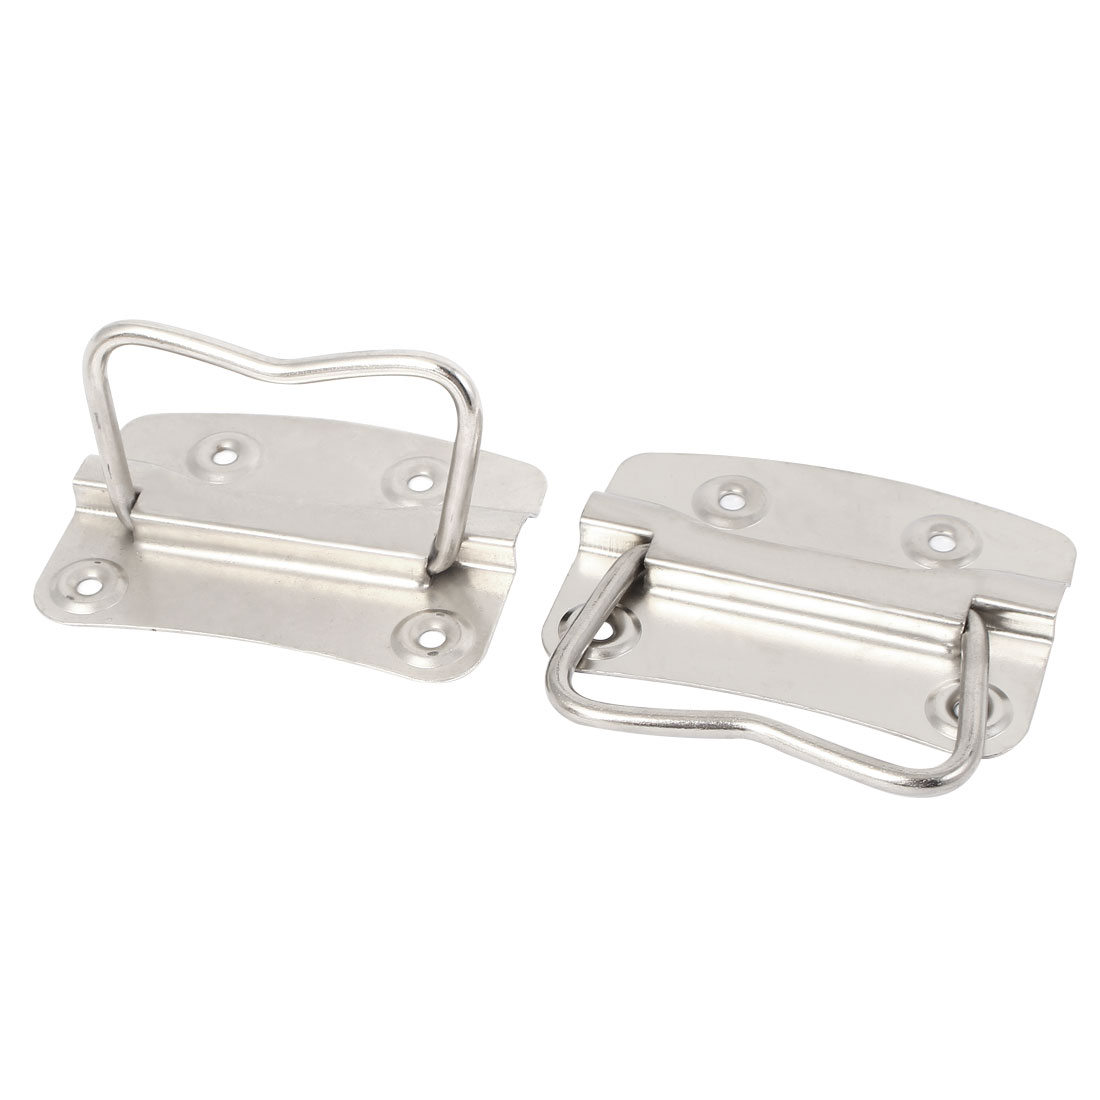 "Metal Flush Mounted Type Box Pulls Tool Chest Trunk Handles 3.5"" Length 2pcs"